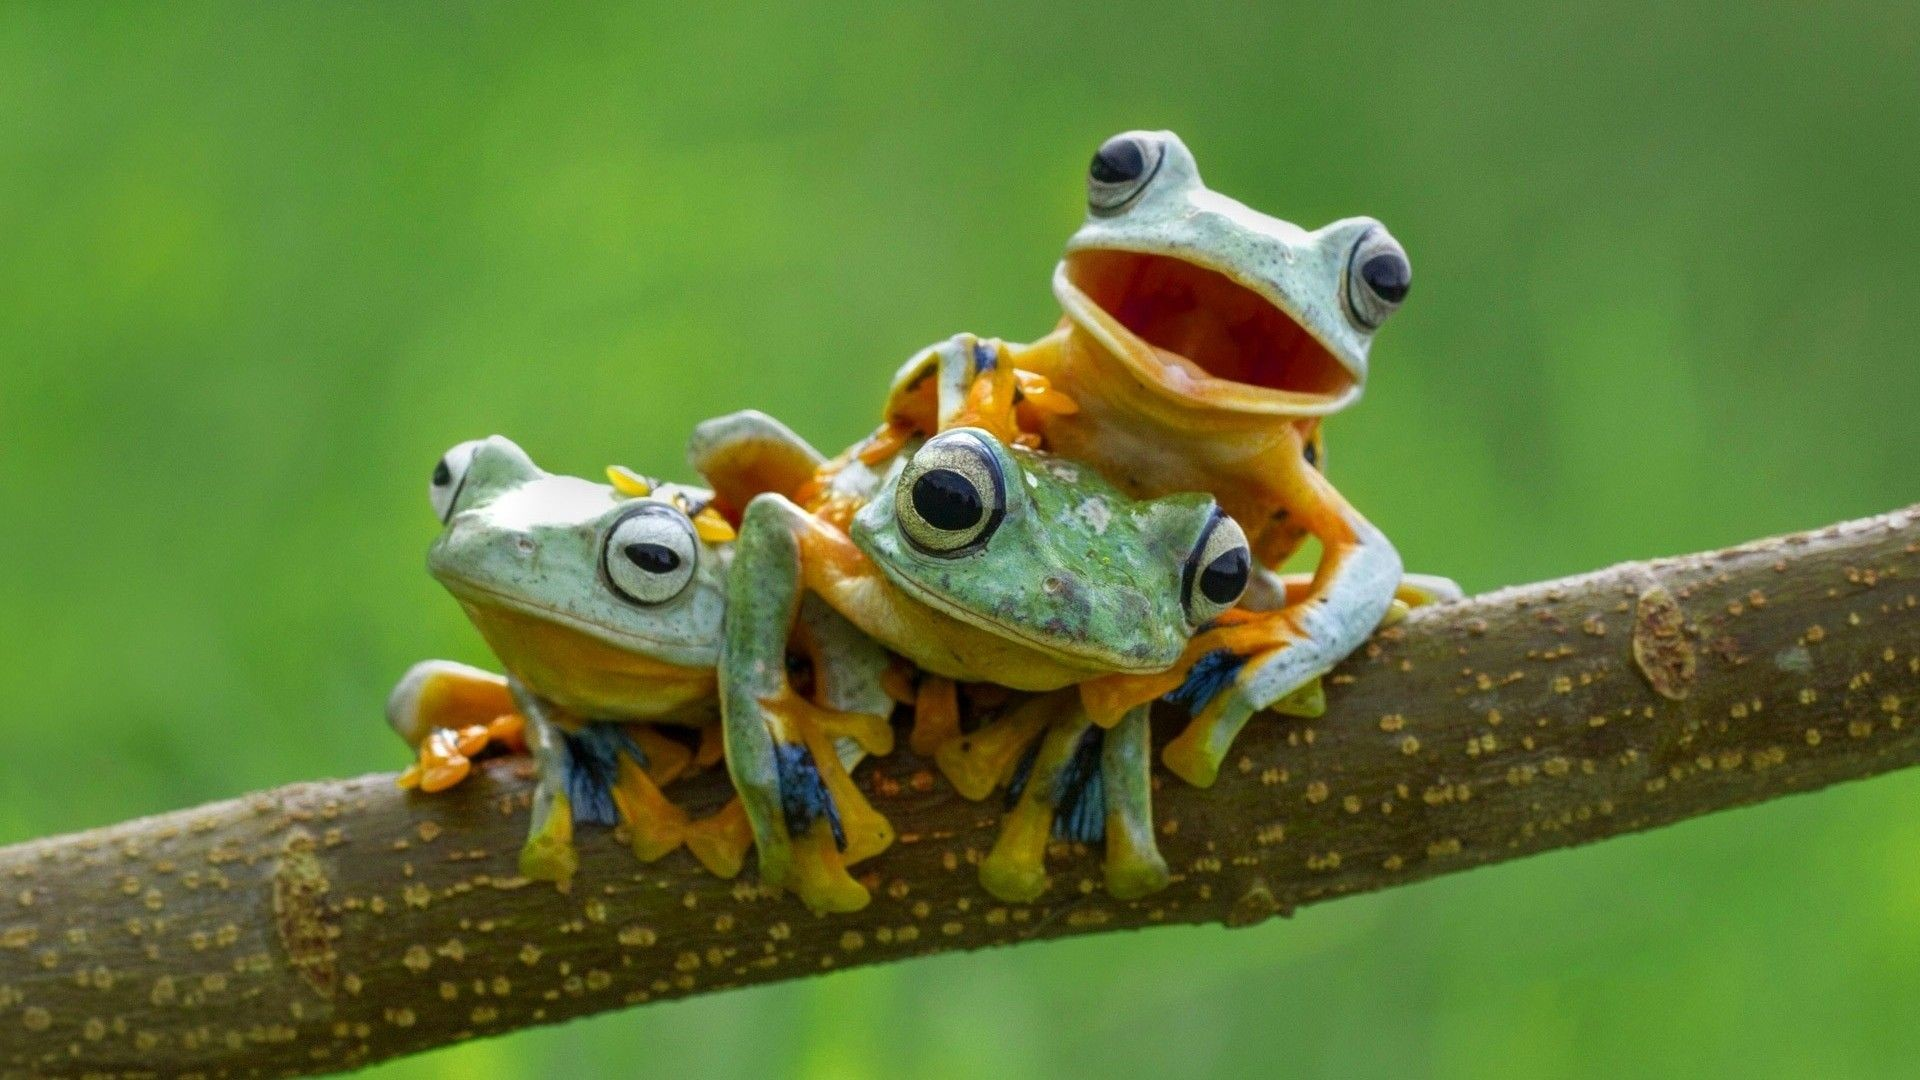 Res: 1920x1080, Frogs images Frog Wallpaper! HD wallpaper and background photos 1920×1080 Frog  Wallpaper (58 Wallpapers) | Adorable Wallpapers